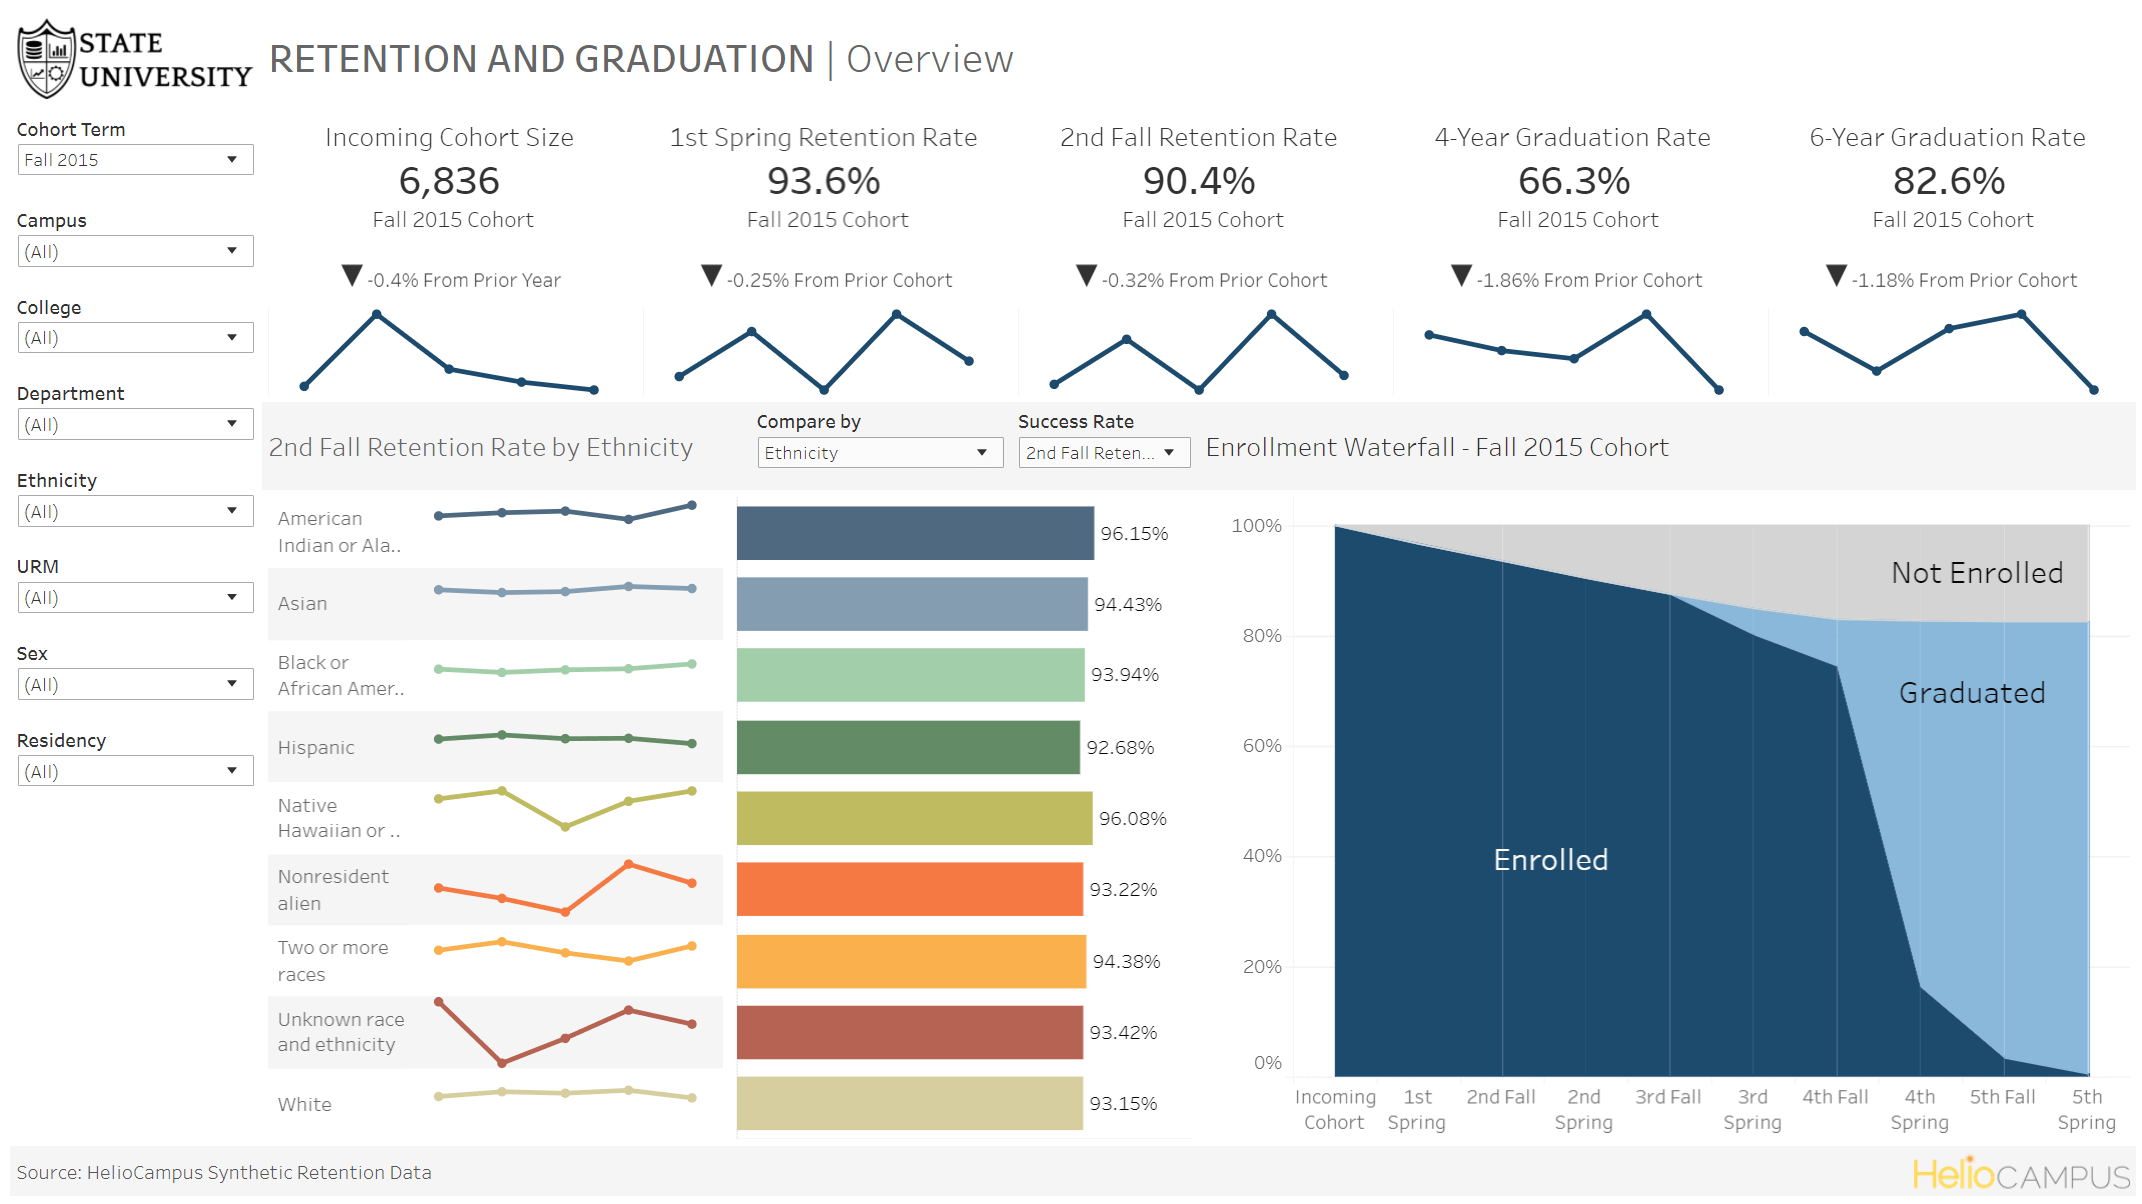 Product screenshot of color-coded graphs comparing retention and graduation rates